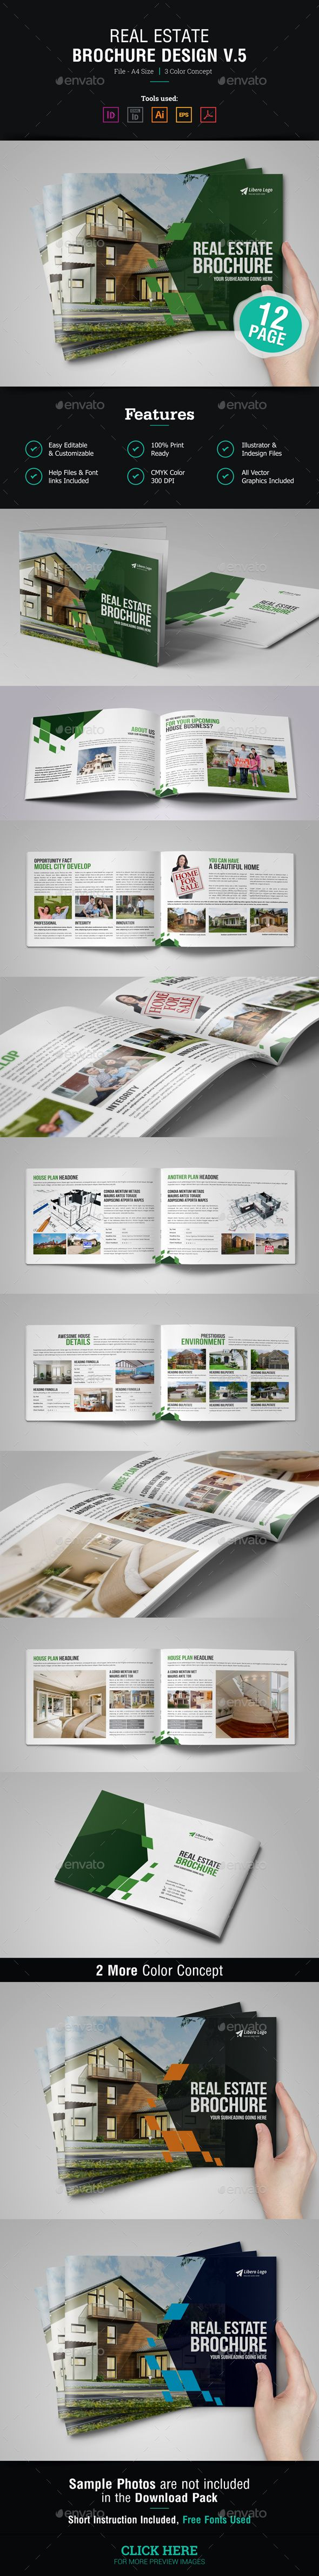 Best Real Estate Flyer  Print Templates  Psd Images On